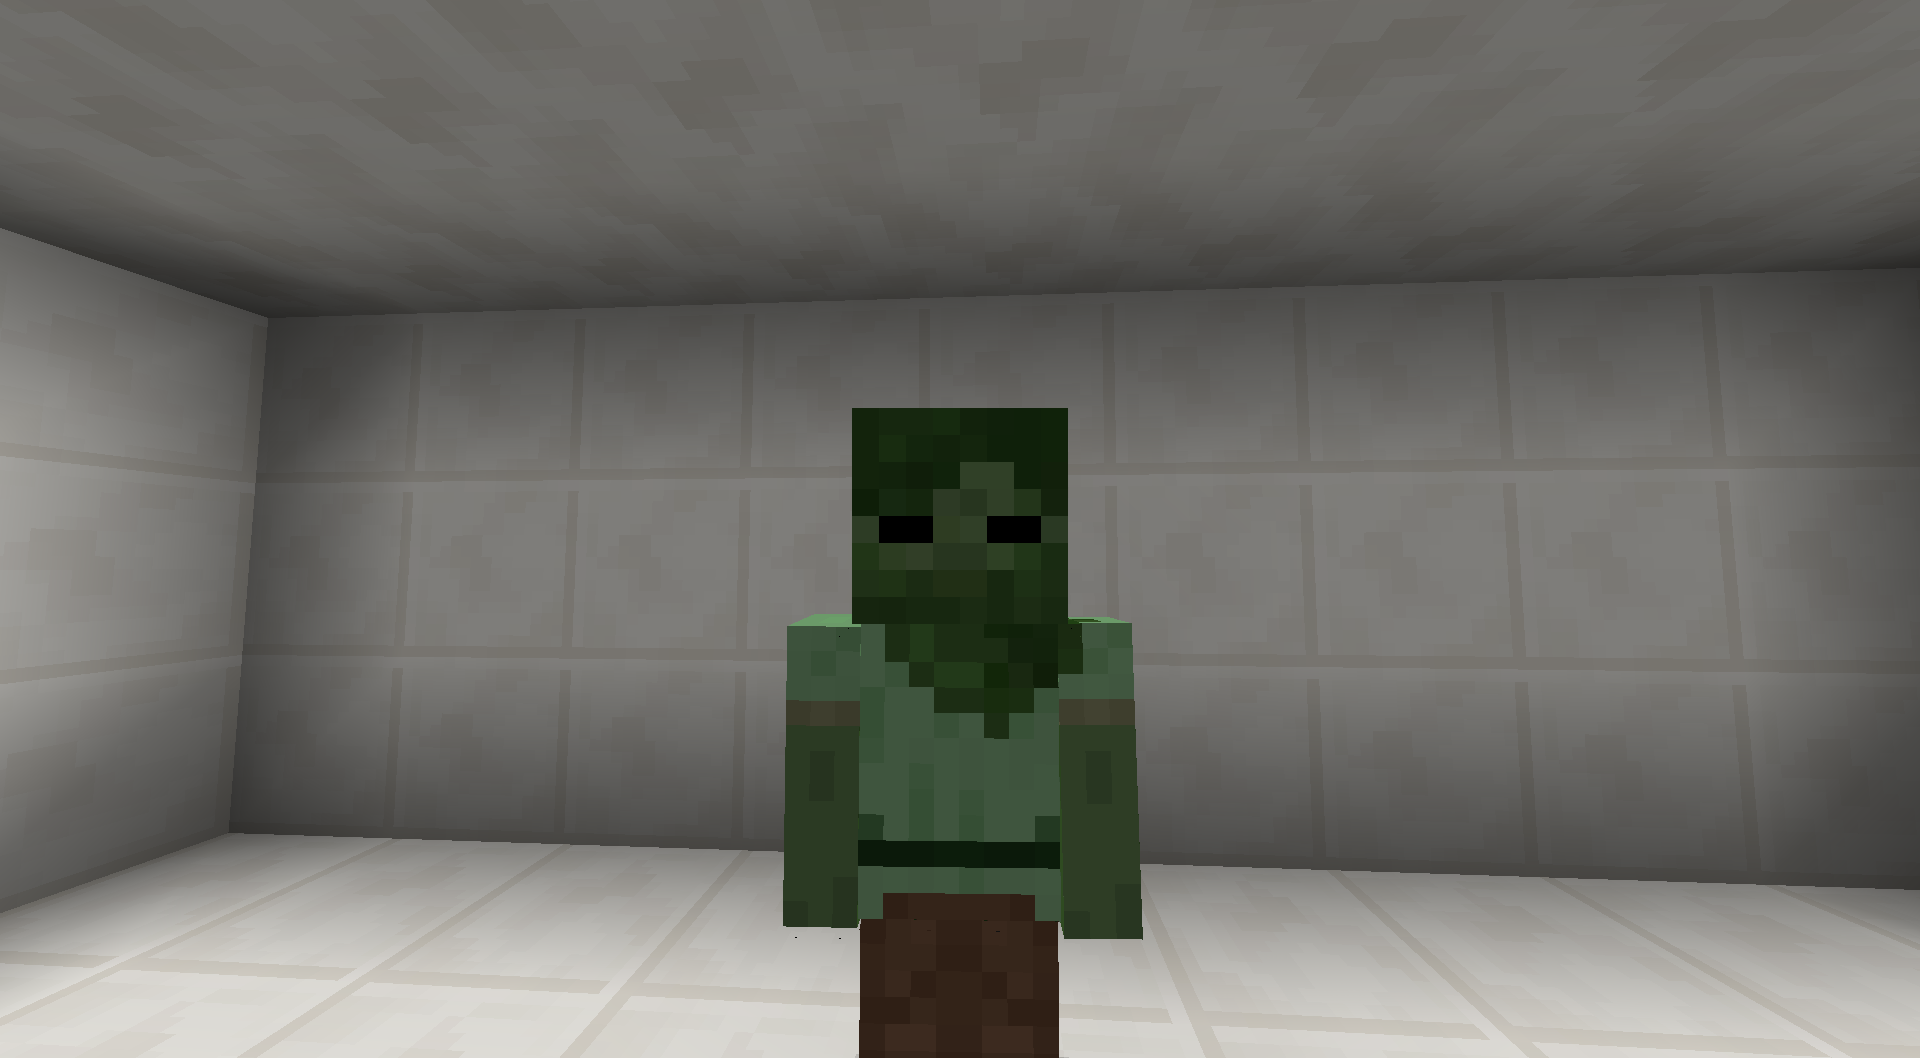 More Zombie Textures/Models! - Suggestions - Minecraft: Java